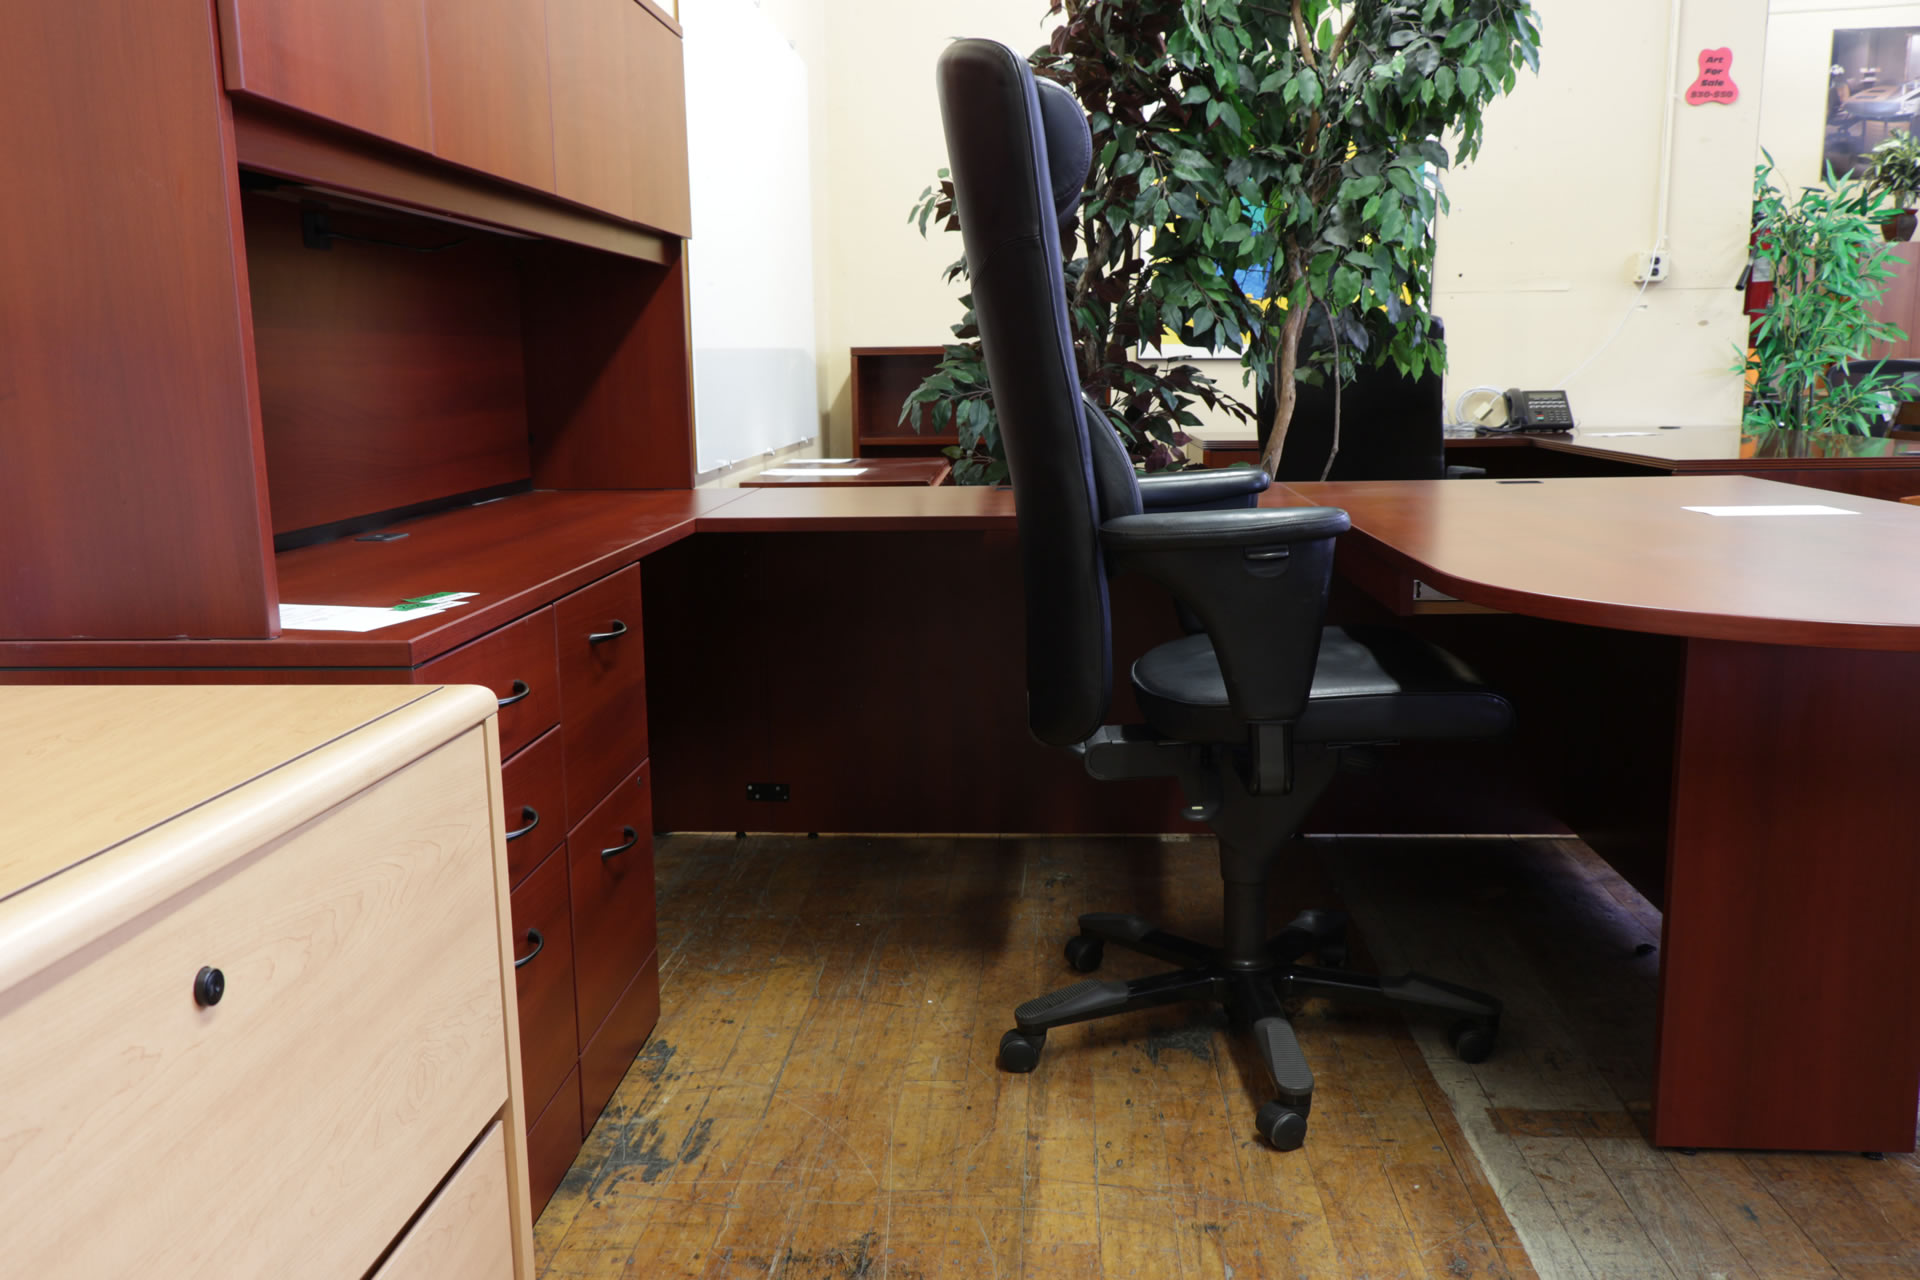 peartreeofficefurniture_peartreeofficefurniture_peartreeofficefurniture_img_8987.jpg